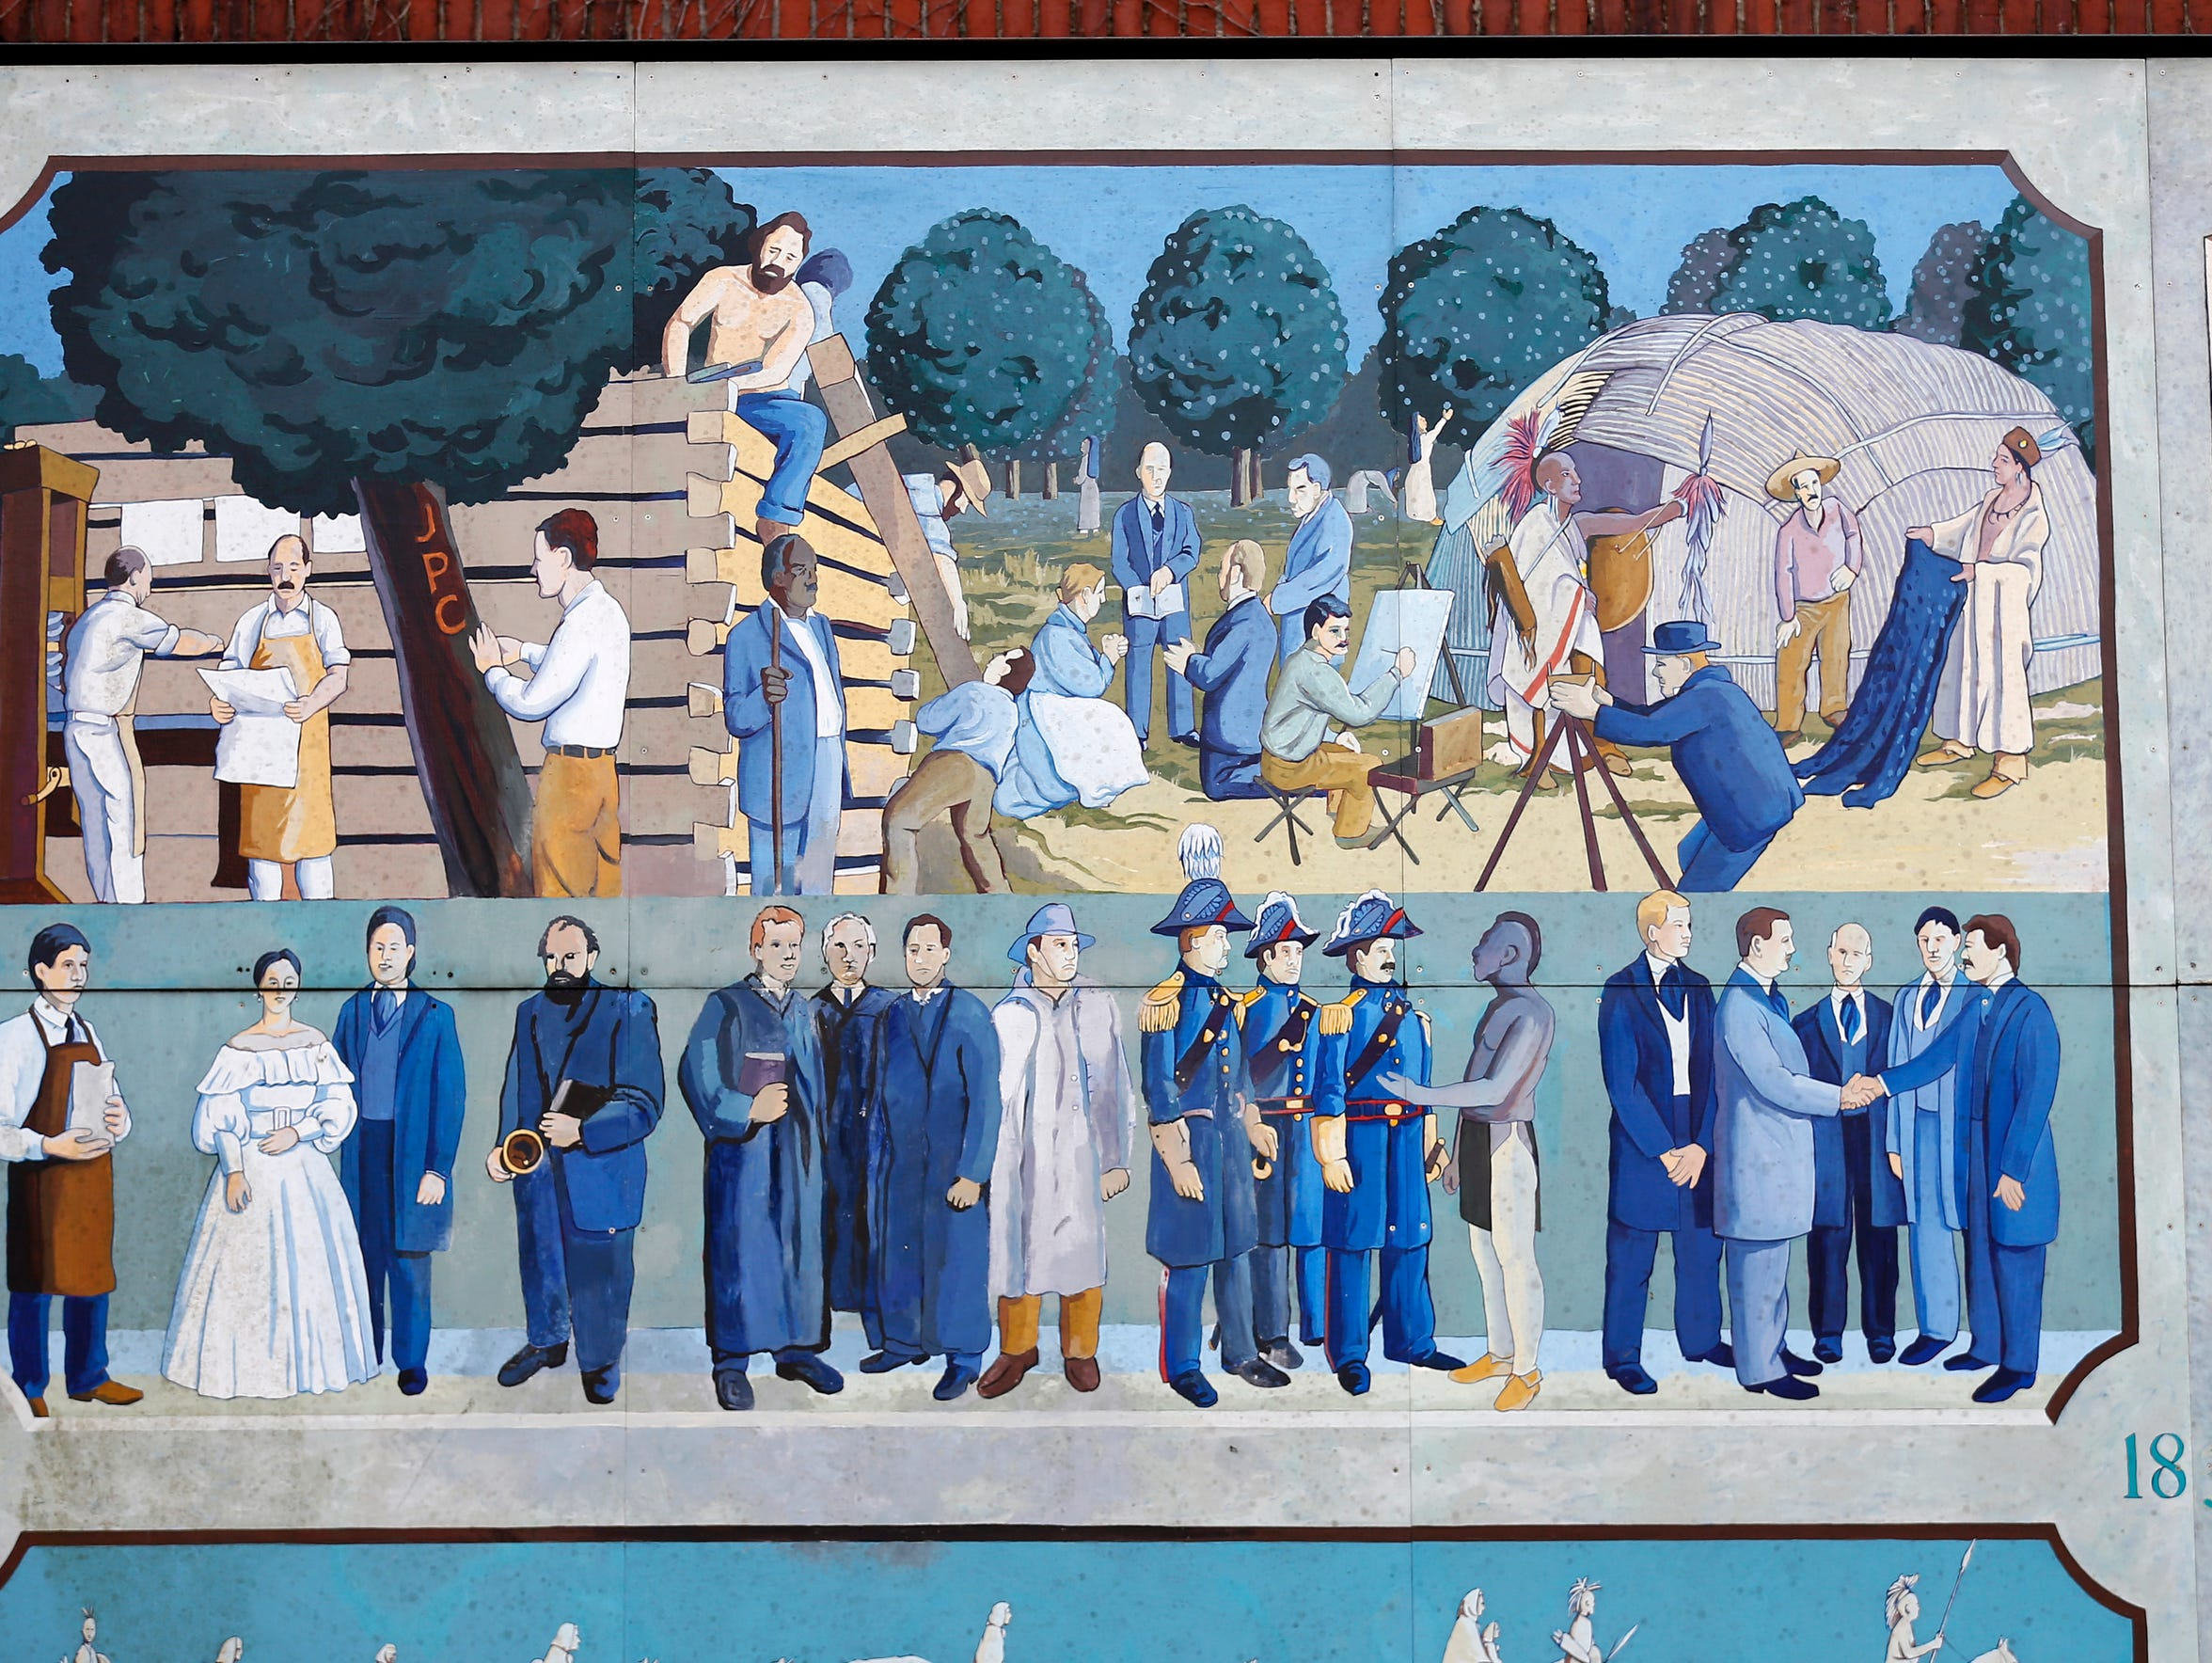 A mural in Founders Park depicts the beginnings of